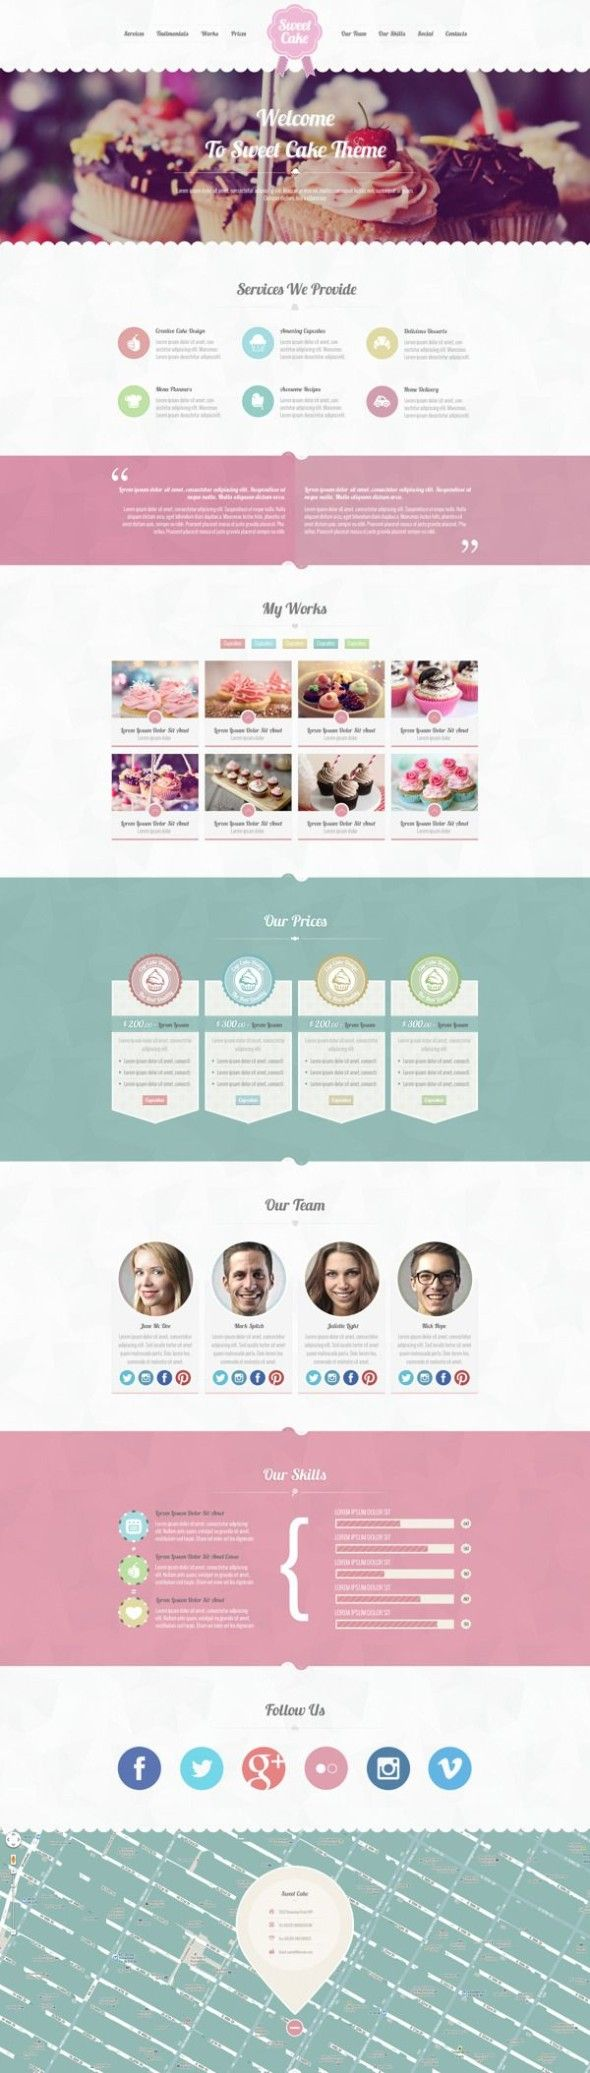 Flat Web Design is hottest trend See the Flat Design Examples Yourself! | iShareArena | Creative Hub